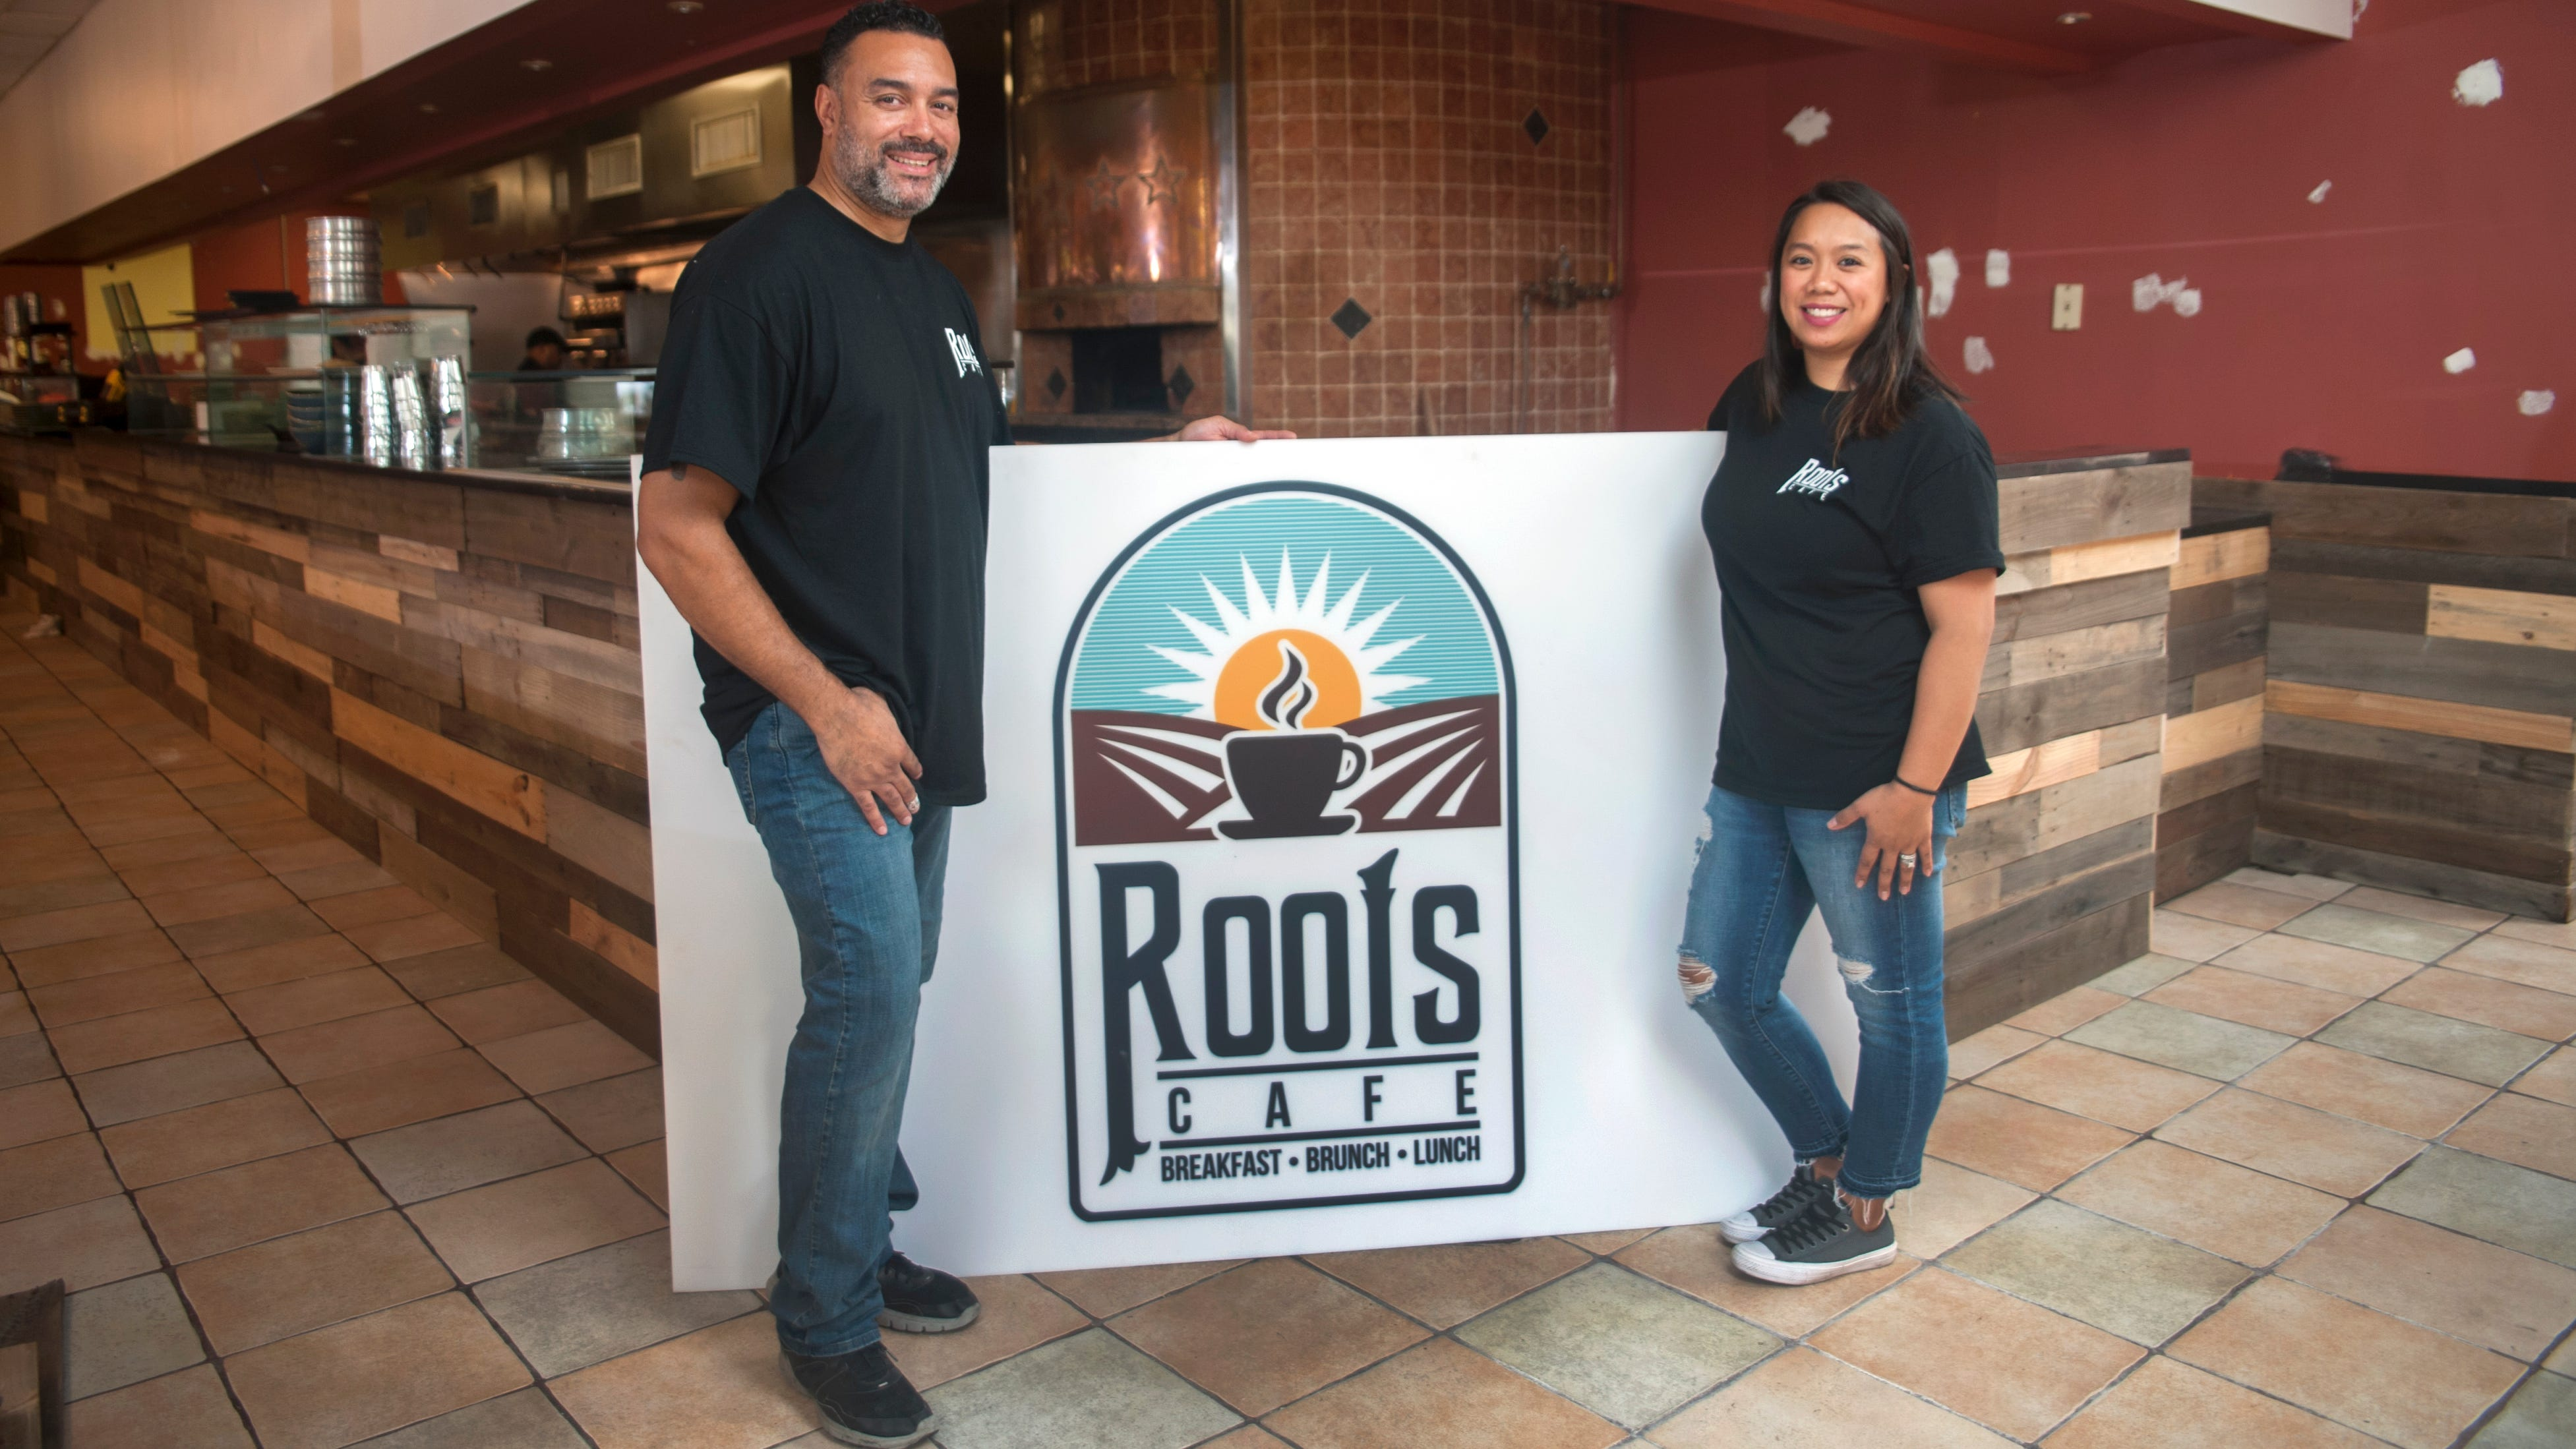 Kevin and Rachelle Johnson, owners of Roots Cafe, stand in their restaurant that is located at the site of the former Forno in Maple Shade.  The restaurant is undergoing finishing touch renovations, and is expected to have its soft opening the week of Oct. 15.